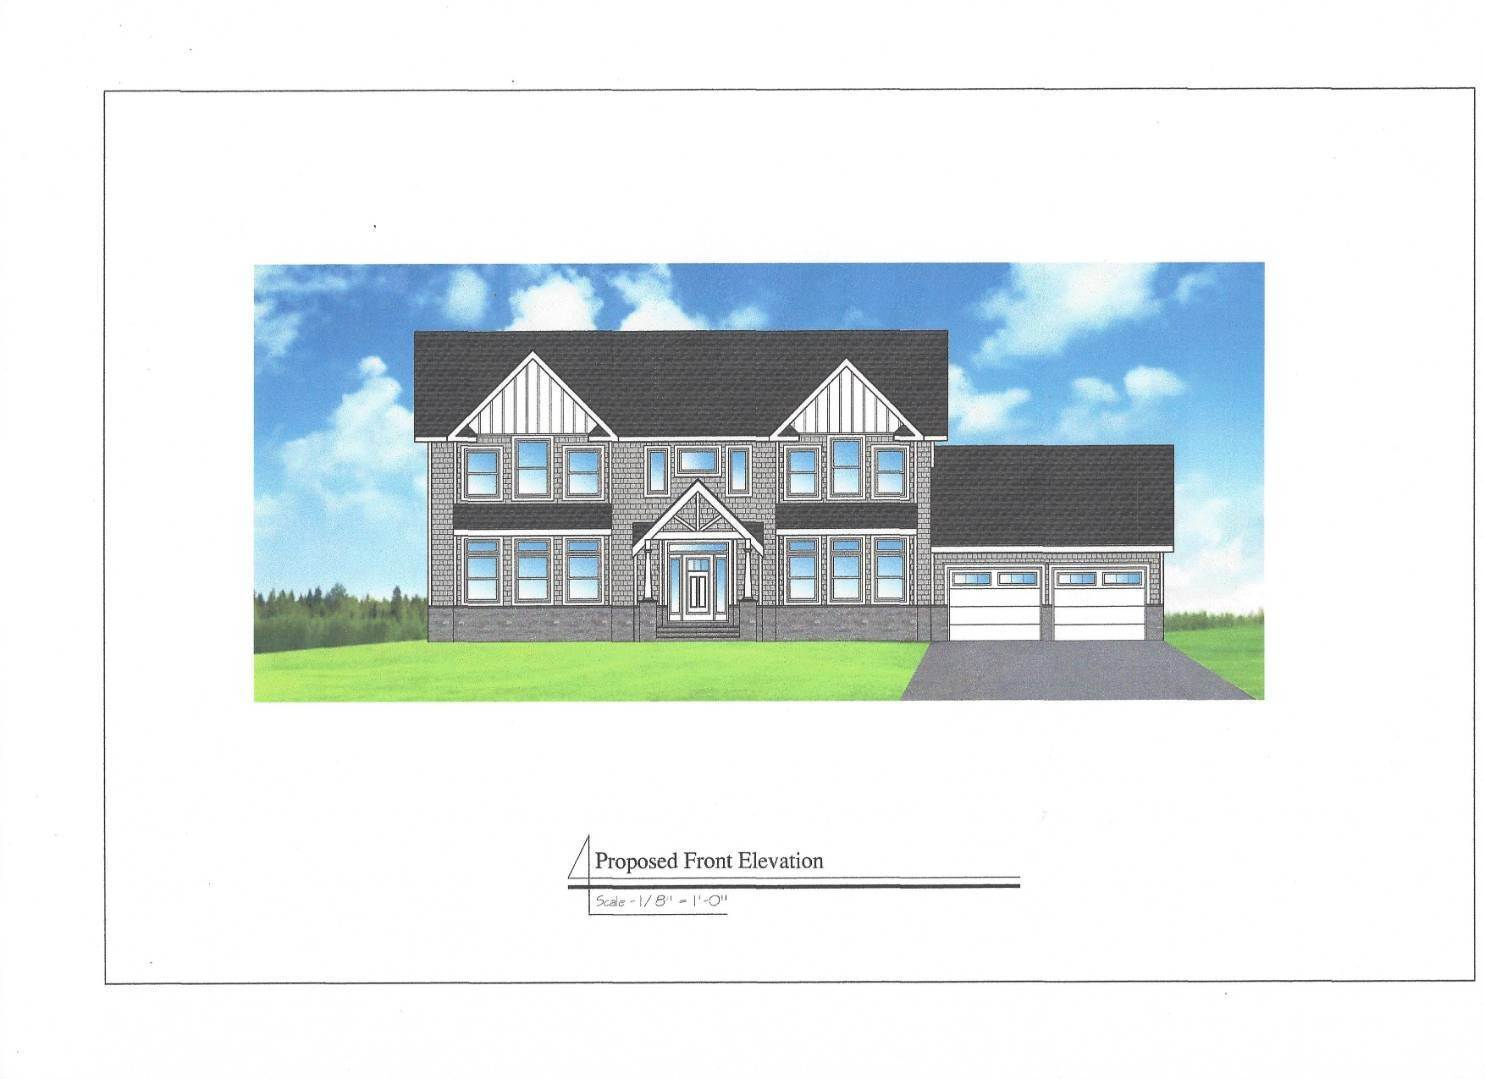 Single Family Home for Sale at New Construction 4 Humphrey St, Westhampton Beach Village, NY 11978